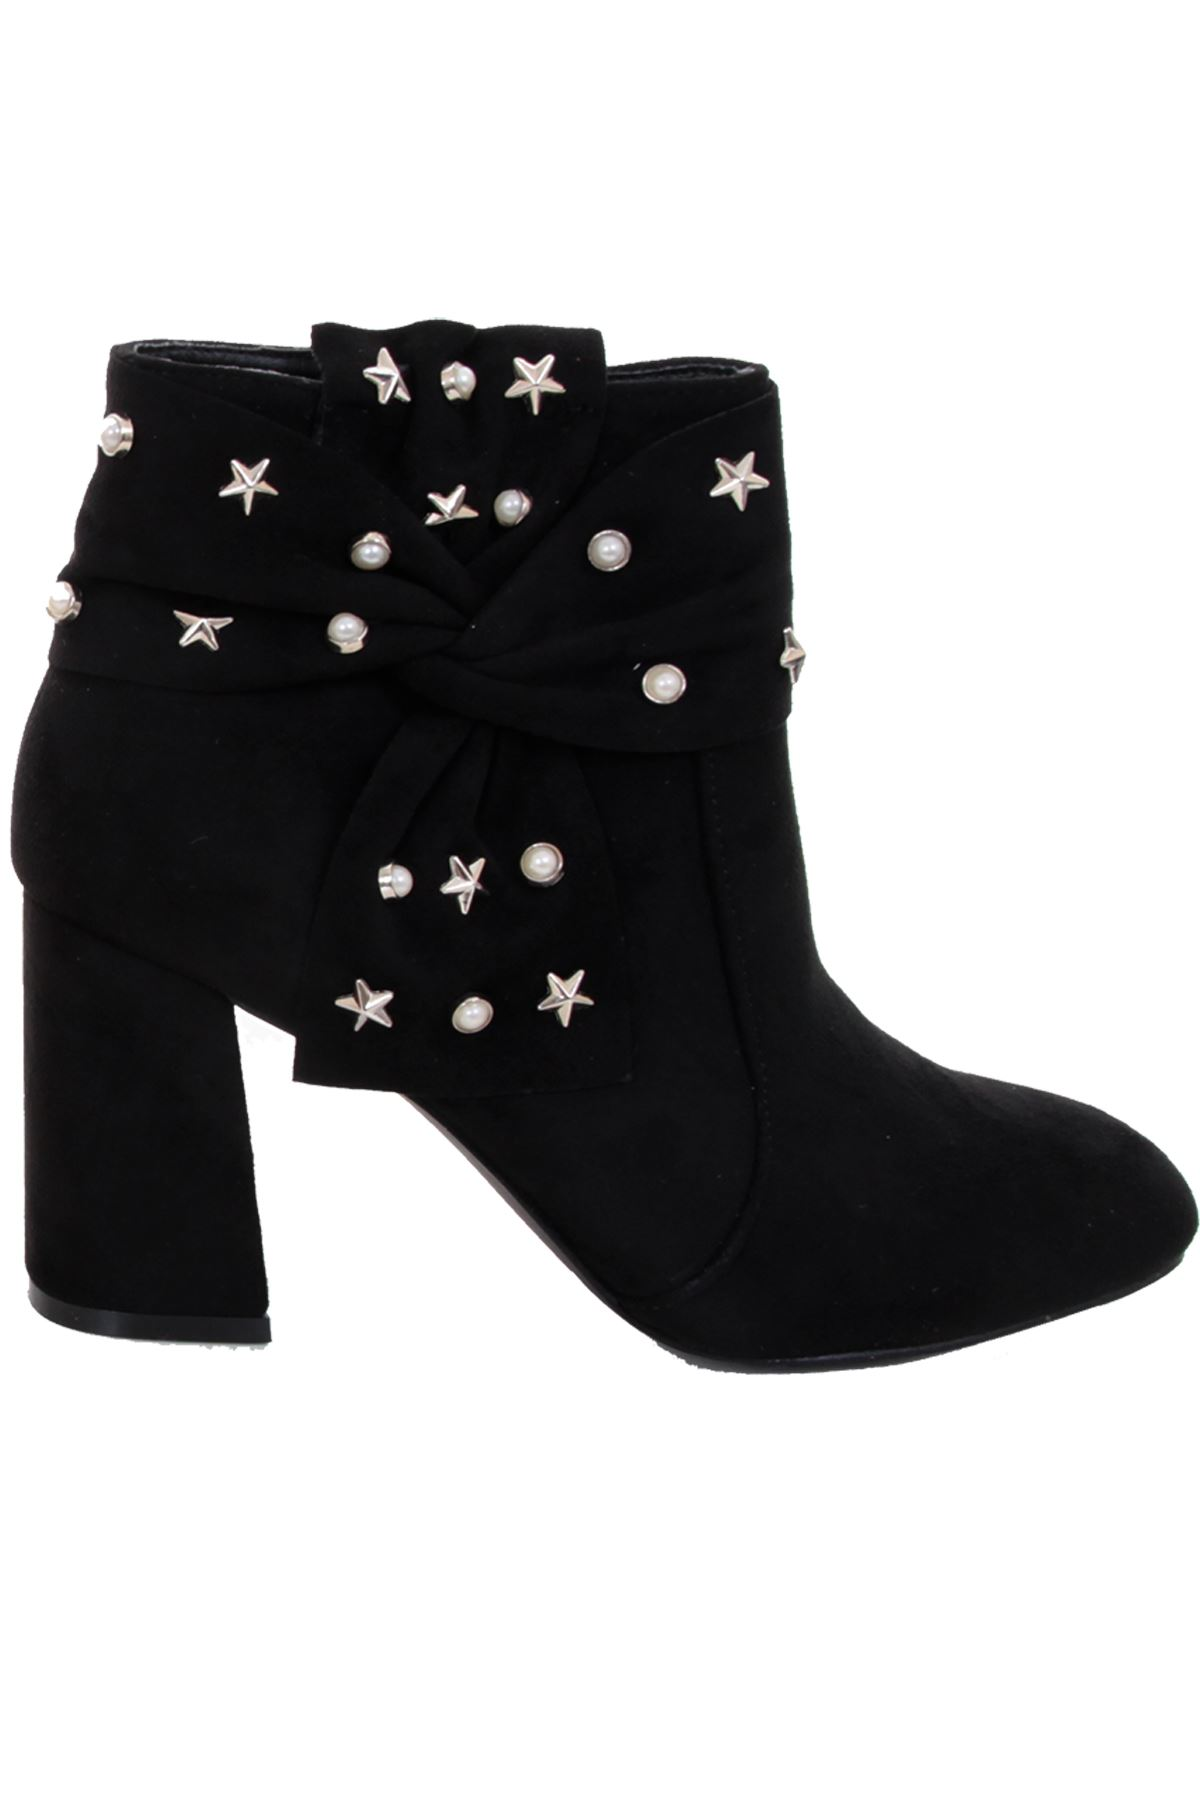 26ac8d3bd Ladies Chunky Block Heel Faux Suede Star Pearl Studded Zipper Ankle ...